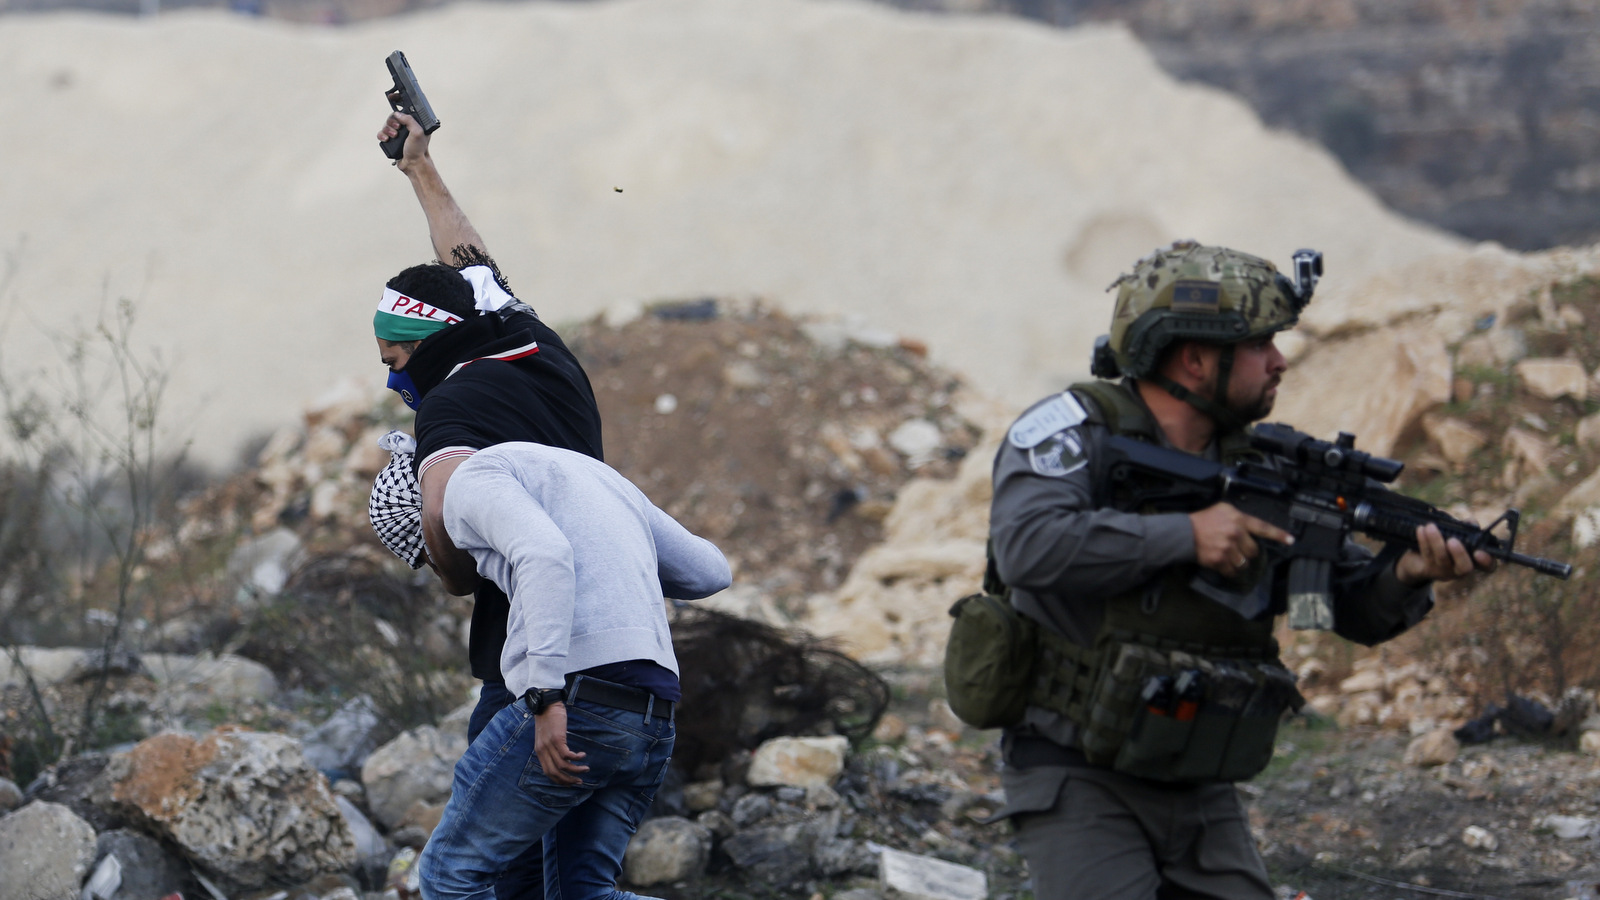 An Israeli policeman disguised as a Palestinian protester raises a pistol in air as he arrests a Palestinian demonstrator during protests against U.S. President Donald Trump's decision to recognize Jerusalem as the capital of Israel, in the West Bank city of Ramallah, Dec. 13, 2017. (AP/Nasser Shiyoukhi)